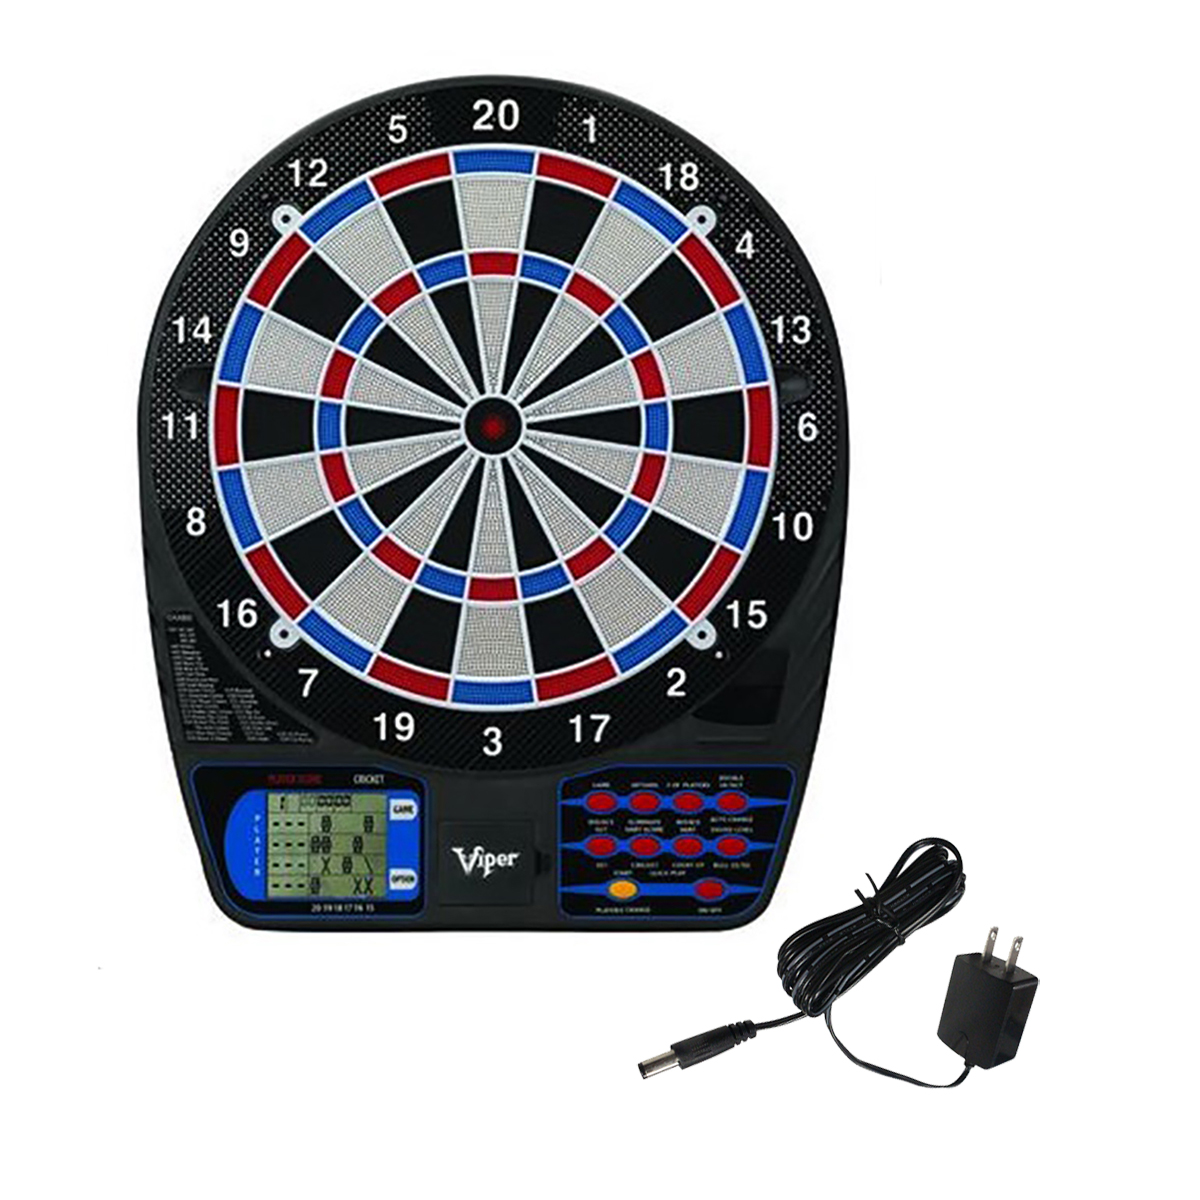 The Best Electronic Dartboard For Your Home or Office | Game Room Guys